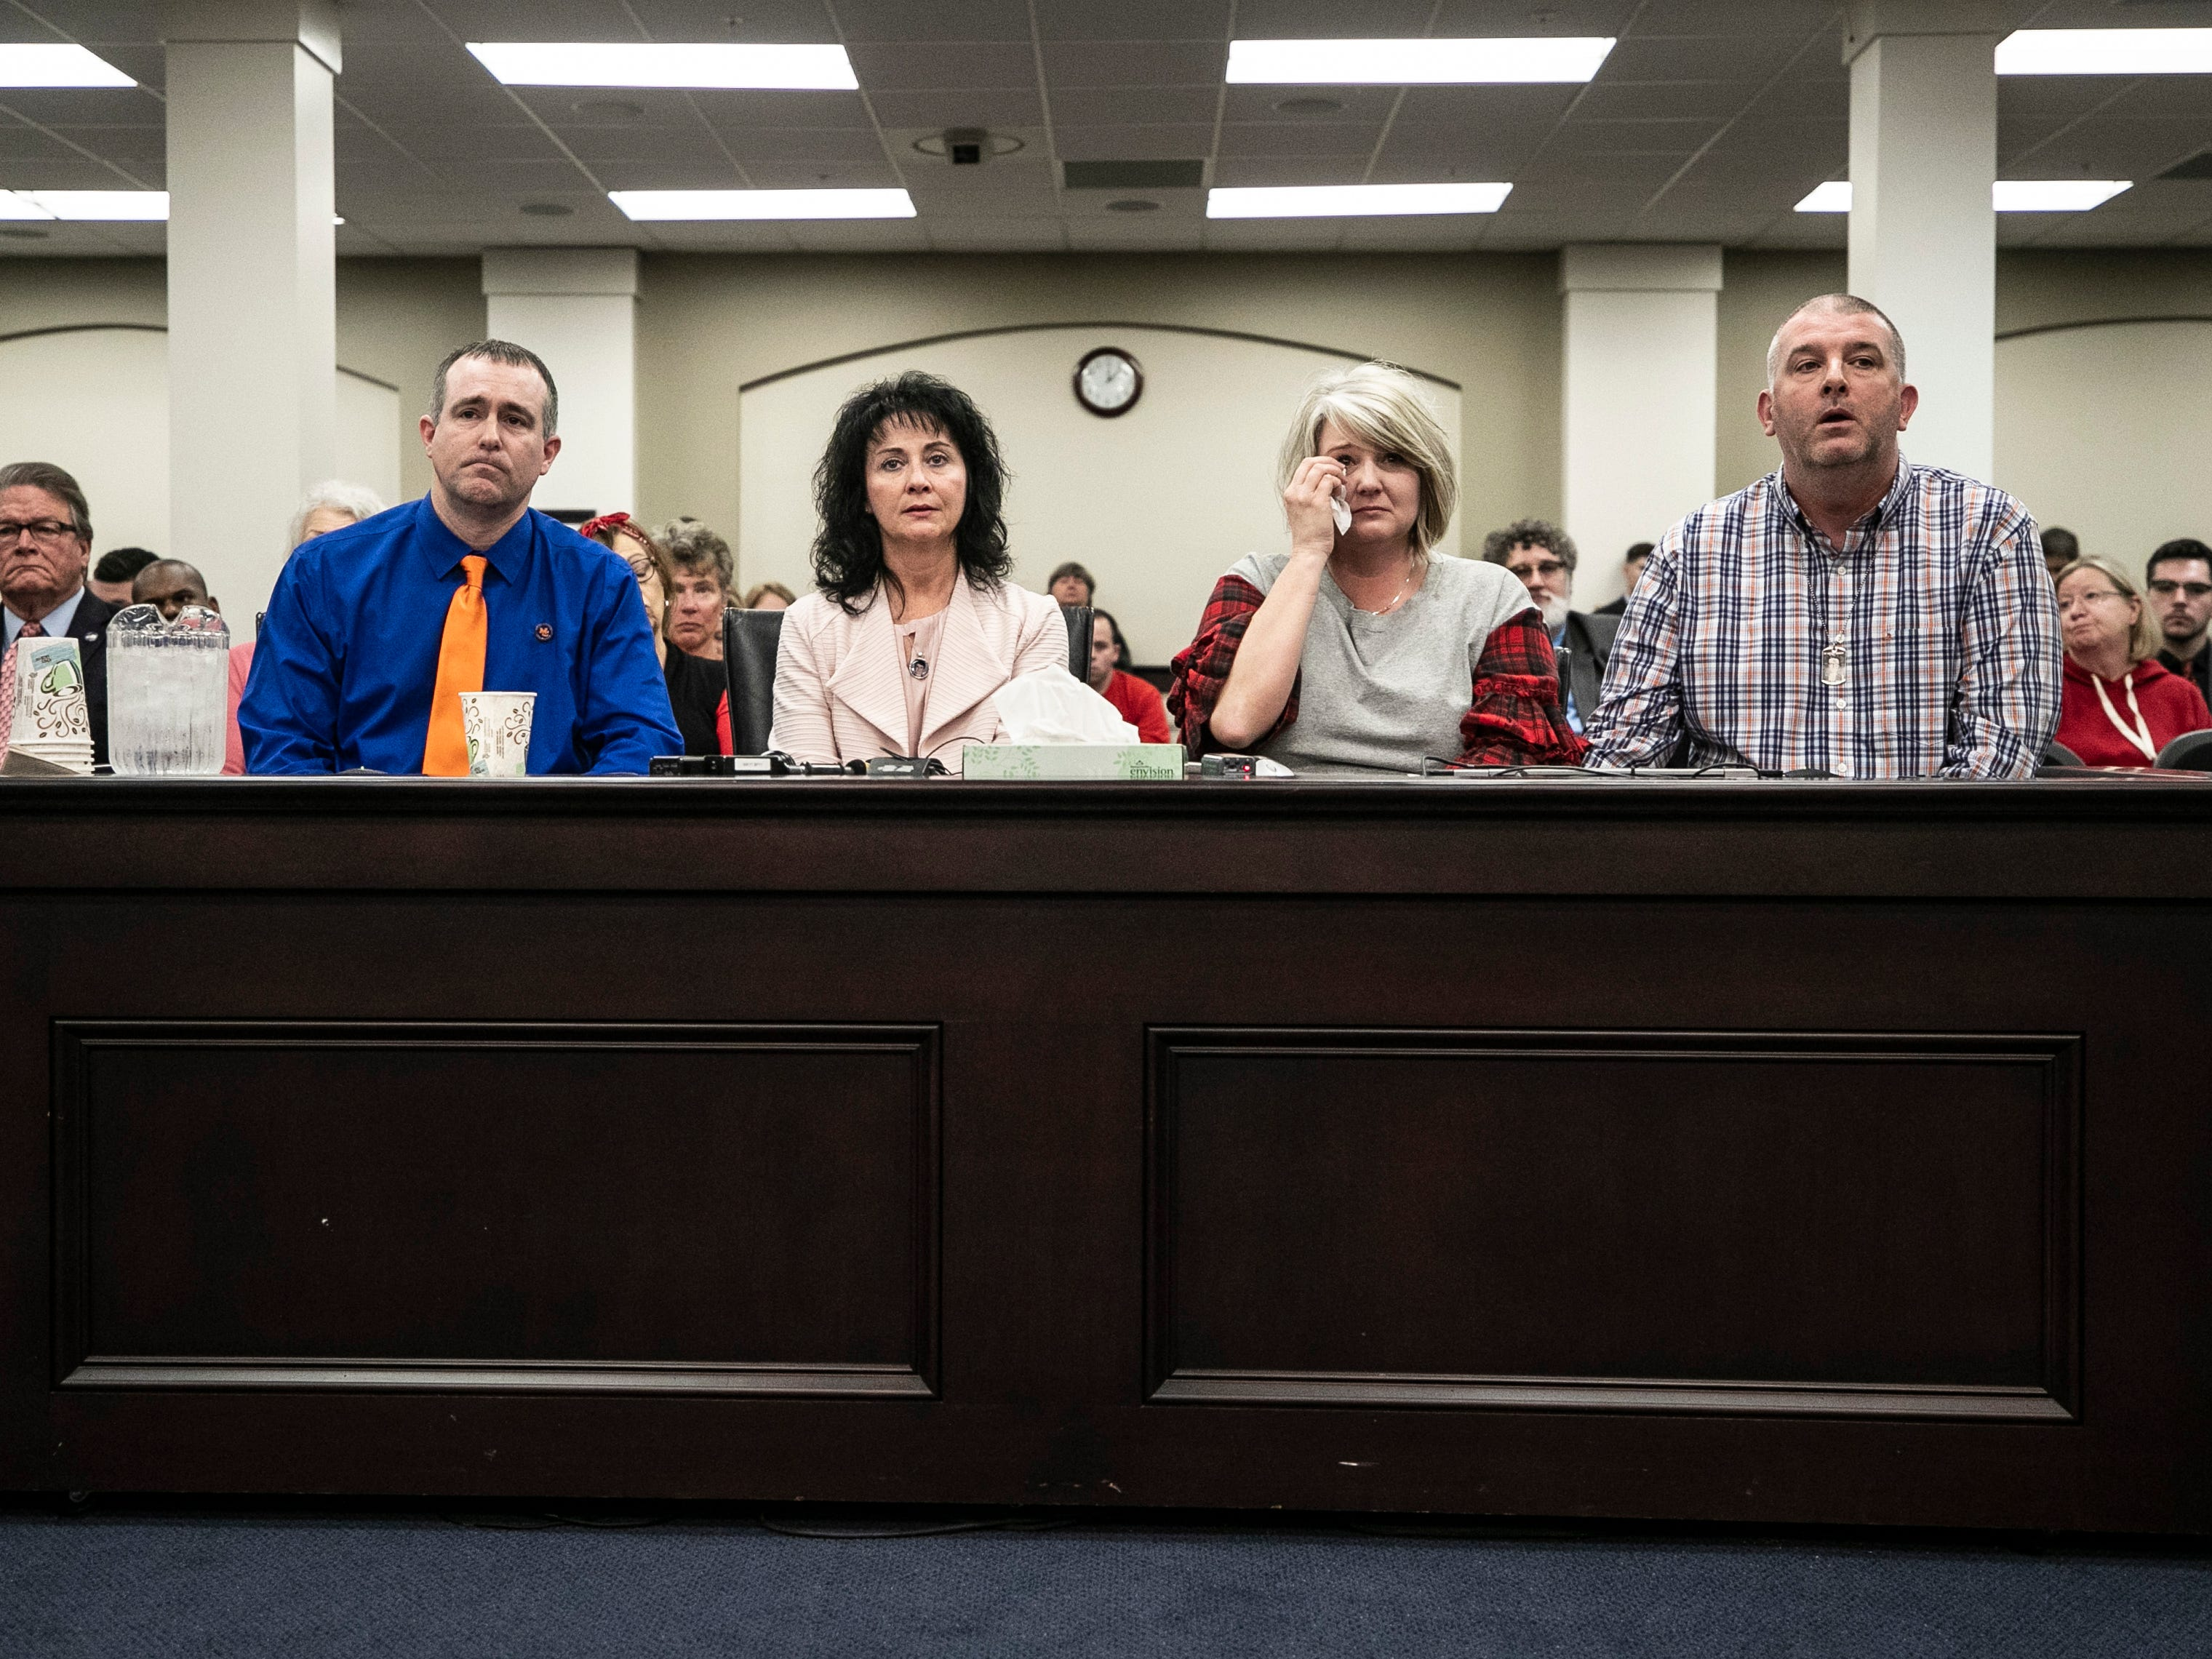 The parents of the Preston Cope and Bailey Holt testify before lawmakers in favor of SB 1, there school safety bill. From left, Brian and Theresa Cope, parents of Preston; and Secret and Jasen Holt, parents of Bailey. Feb. 7, 2019